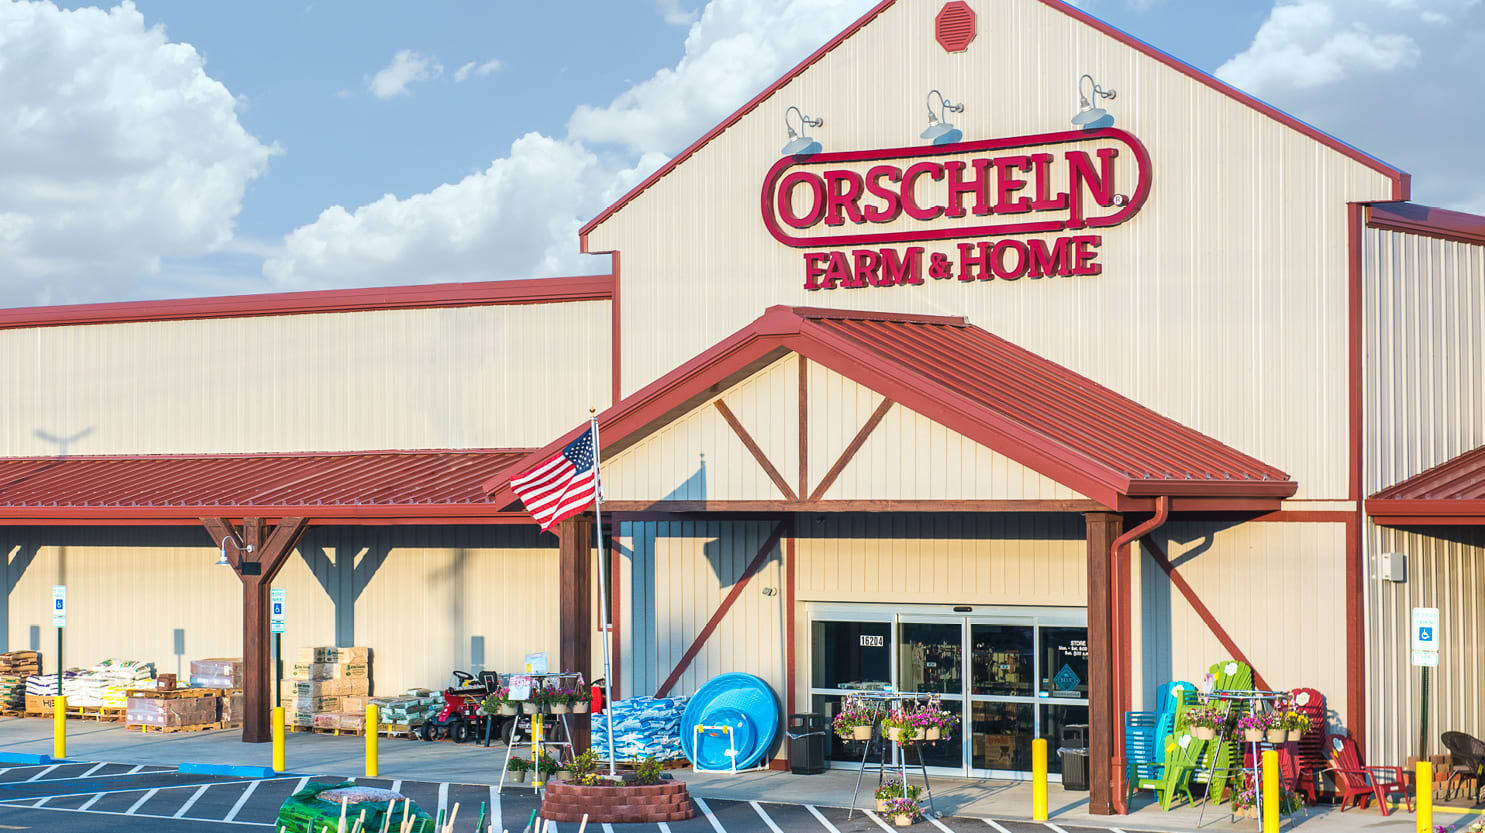 Front view of Orscheln Farm & Home Store in Eureka, Kansas 67045